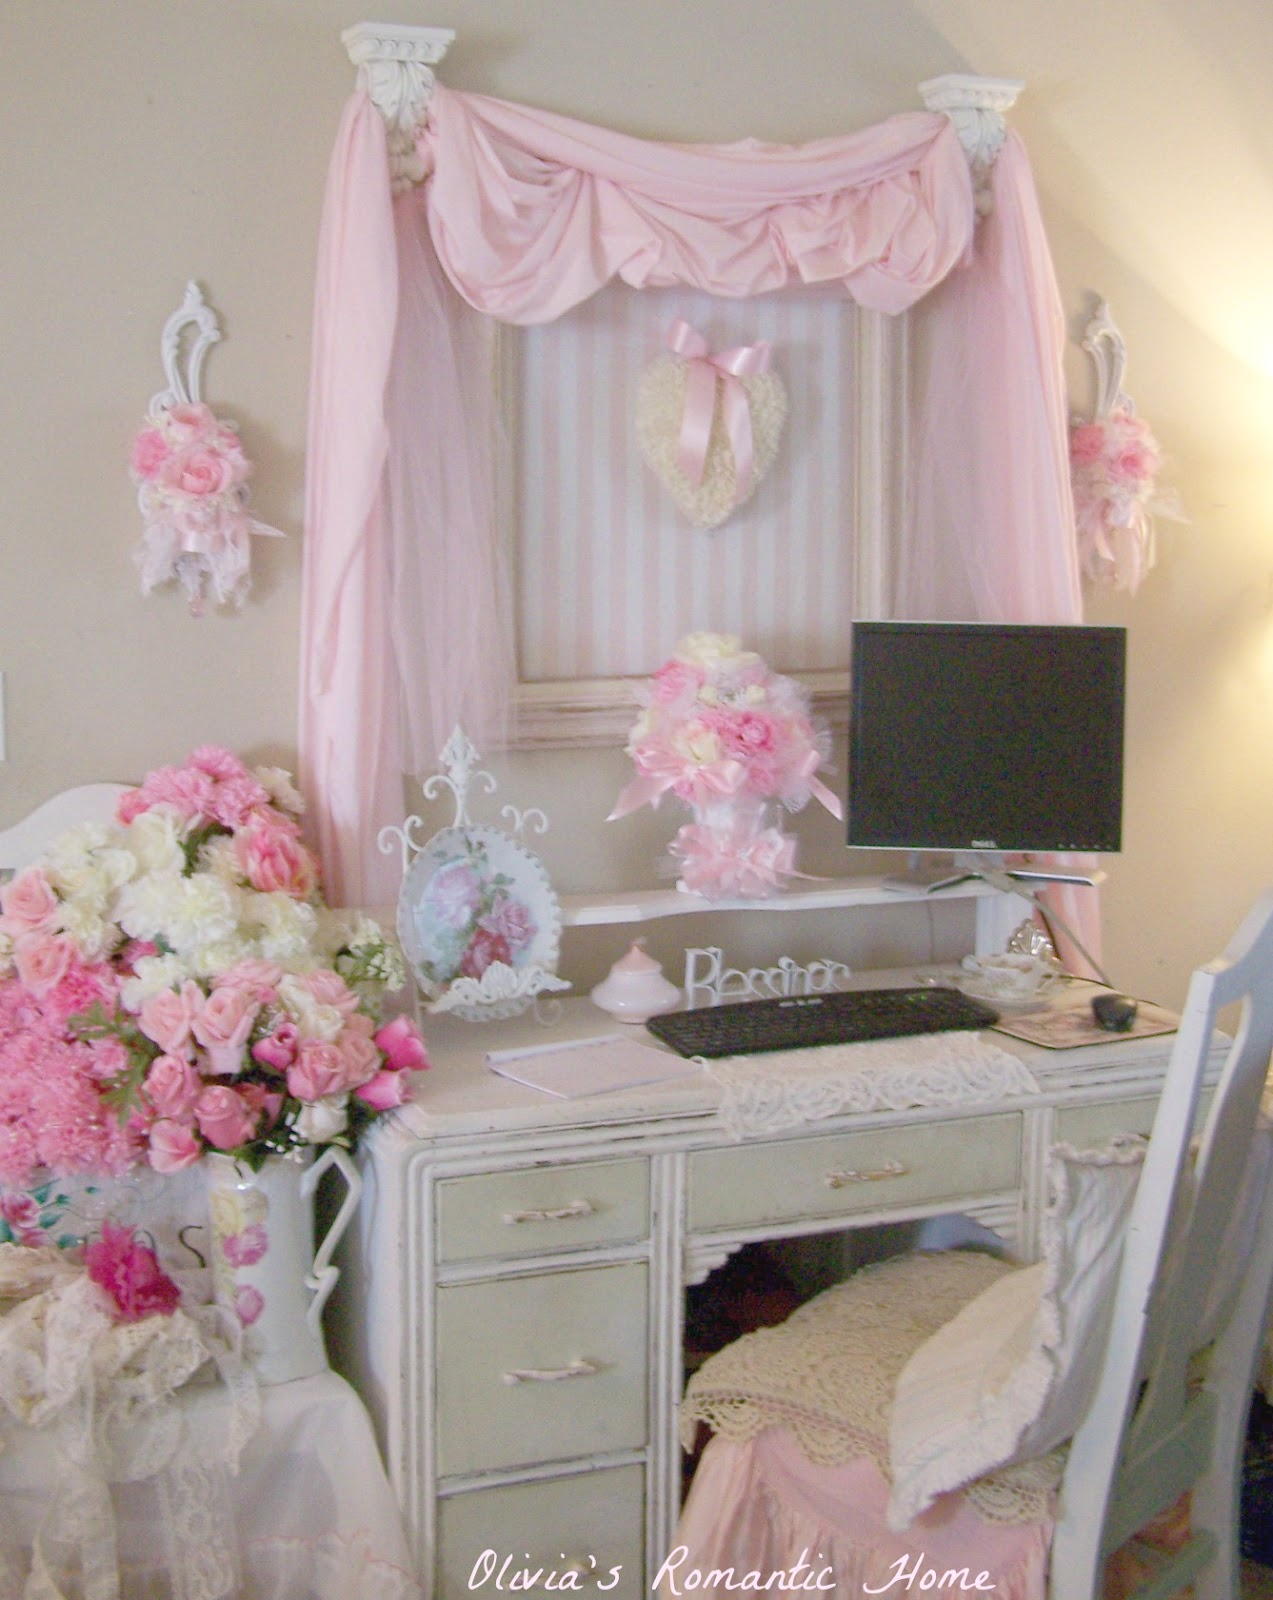 Vintage Chic Home Decor Shabby Chic Home Decor Home Designs